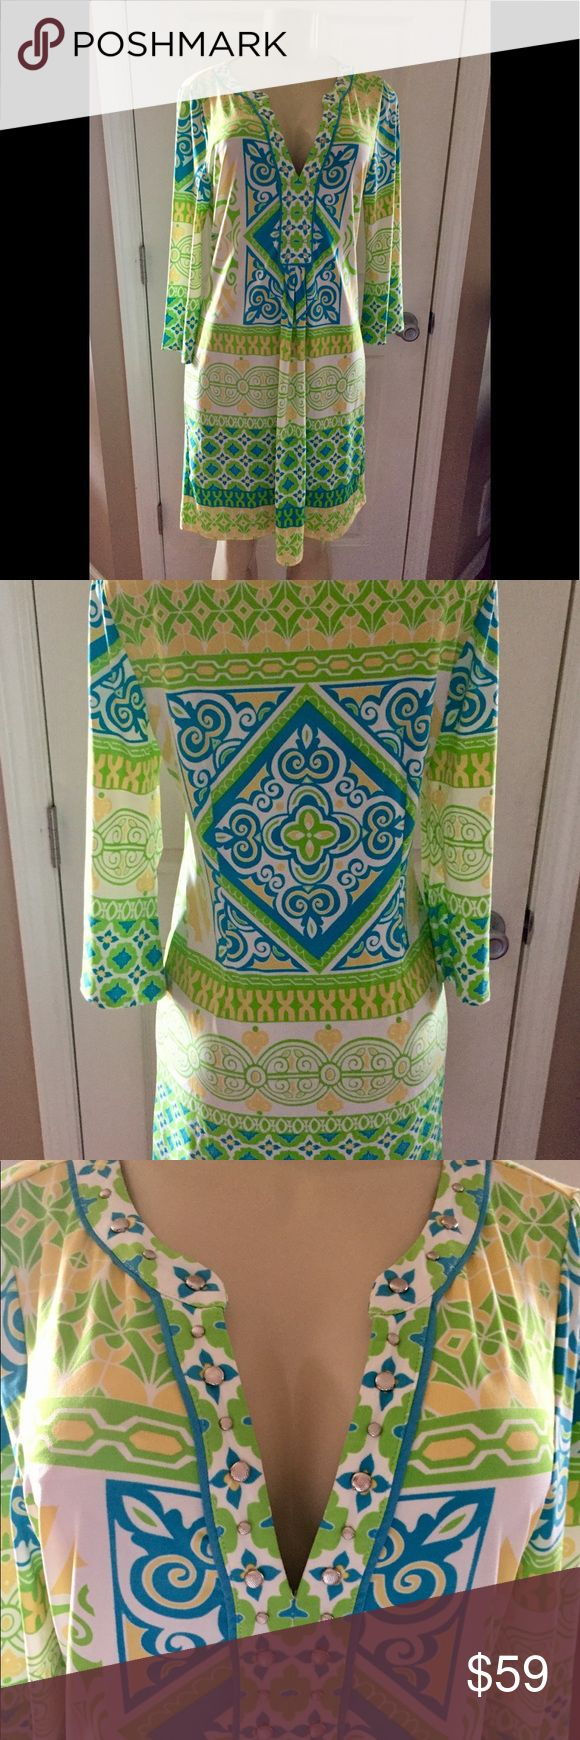 NWT!!! Hale Bob Yellow/Green/Blue Print Dress Sz.M NWT!!! Absolutely Gorgeous! Sz. M  Hale Bob Yellow/Green/Blue/White Print Jersey Knit Dress. Has Pleated Drape Front & V Neck. W/Silver Stud Detailing on the V. Super Comfy. Stretchy, So Could Easily Fit to a Large. Perfect Spring Dress!  Hale Bob Makes Great Quality Dresses!  SMOKE FREE/PET FREE HOME Hale Bob Dresses Midi